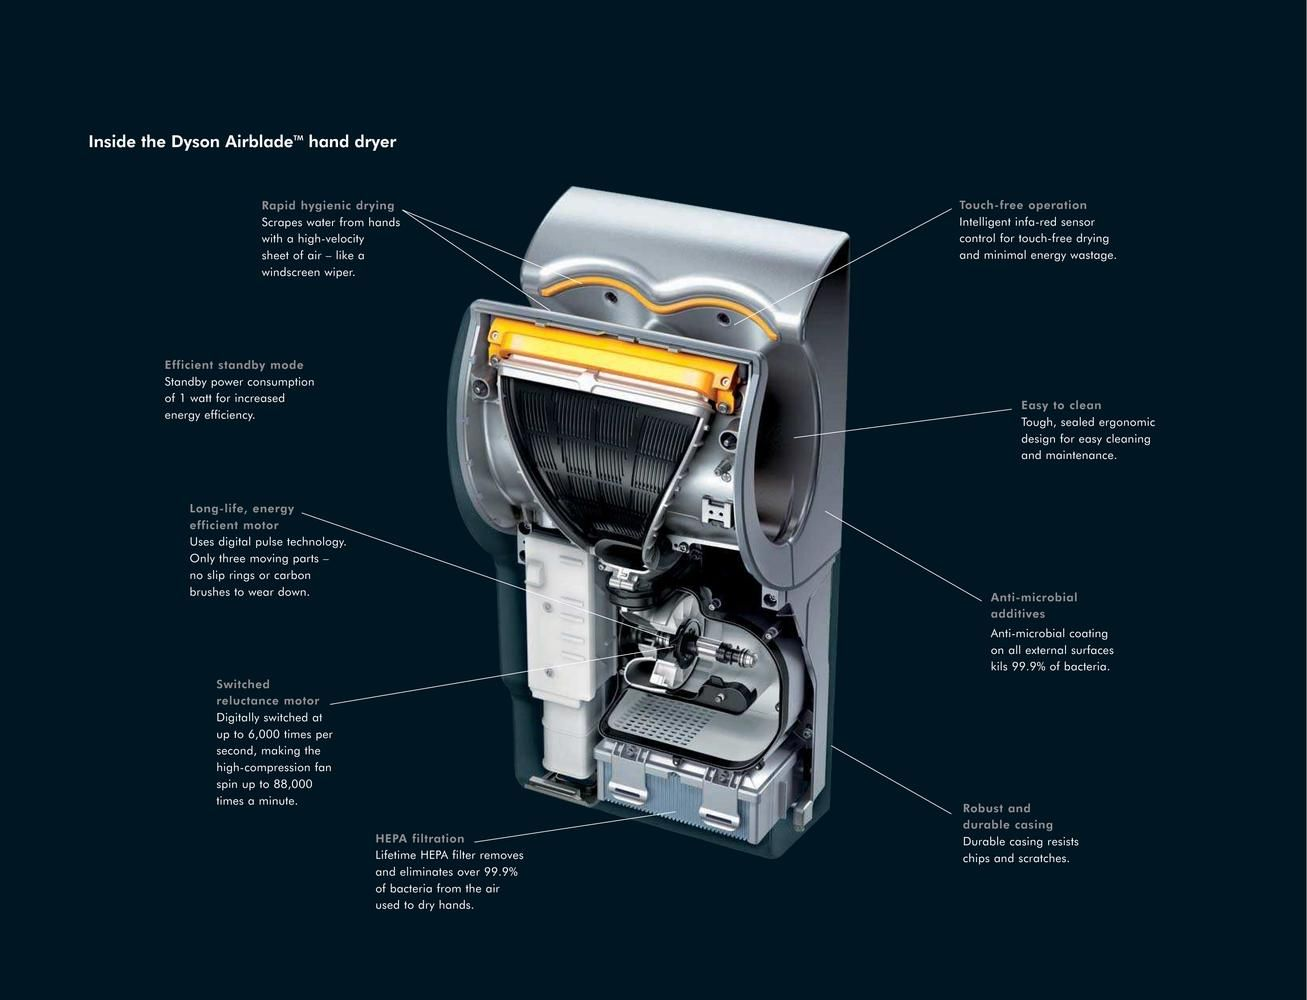 dyson airblade | Shut up and take my money! | Pinterest | Products